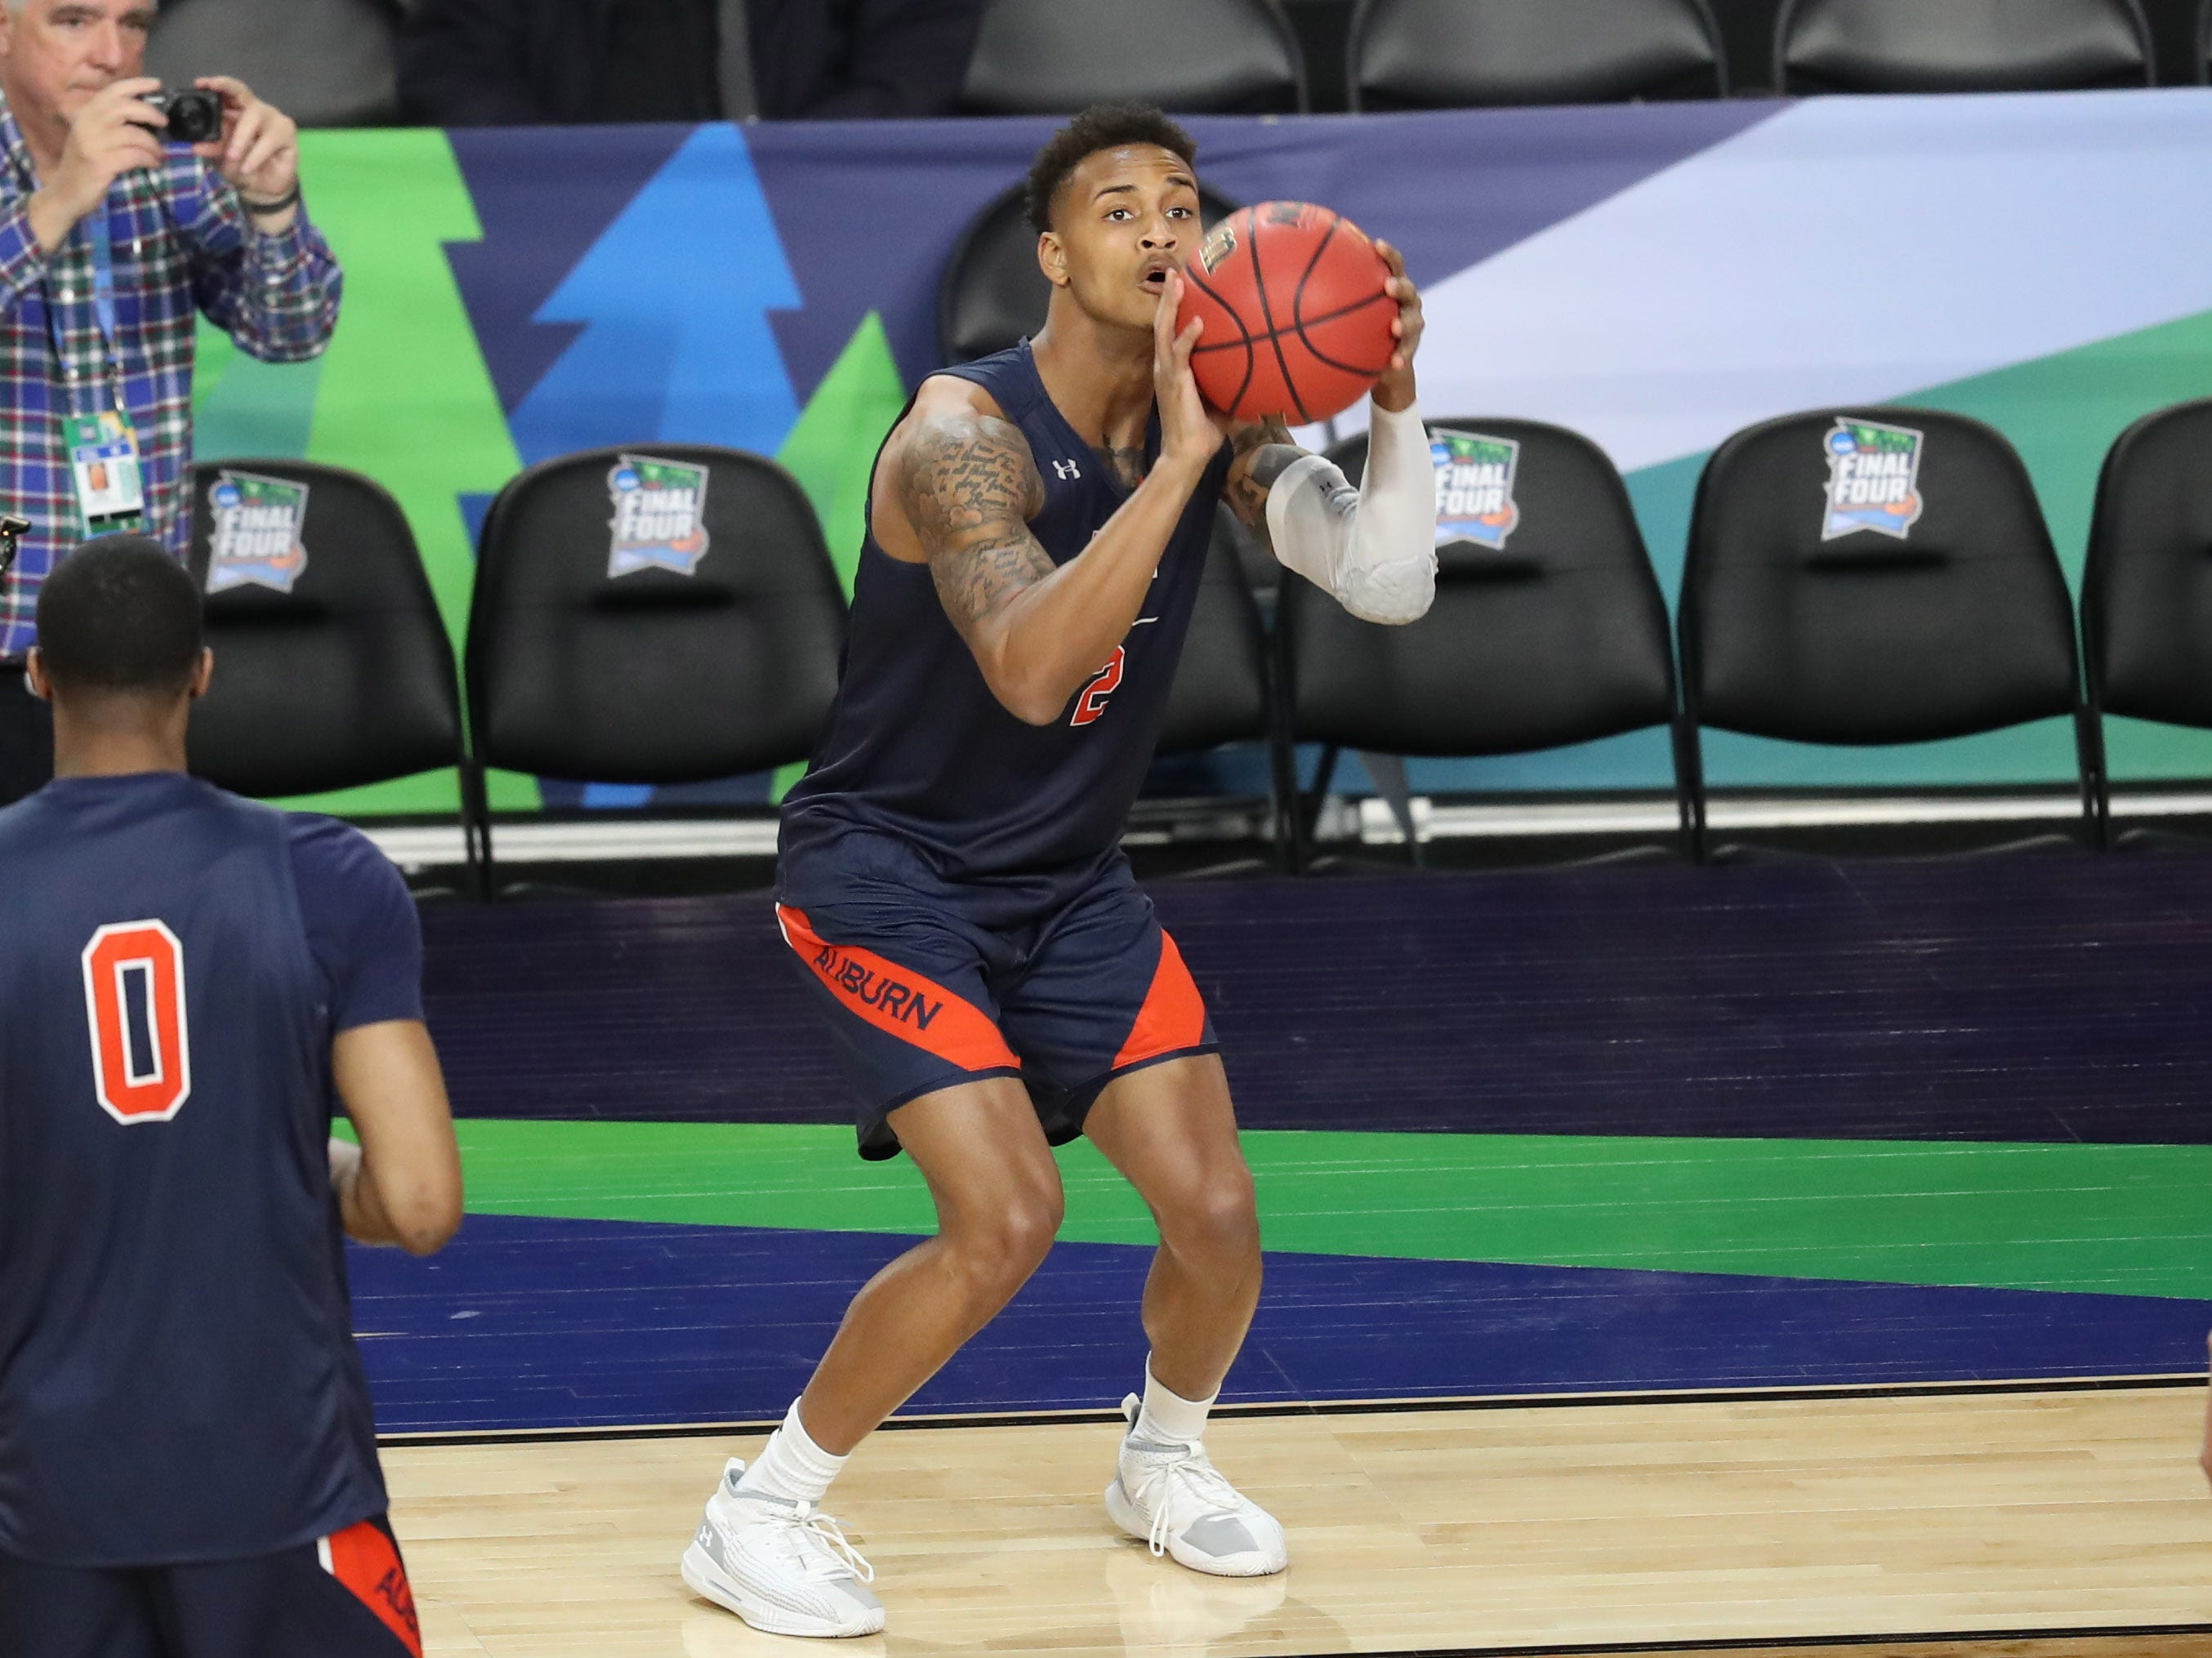 Apr 5, 2019; Minneapolis, MN, USA; Auburn Tigers guard Bryce Brown (2) shoots during practice for the 2019 men's Final Four at US Bank Stadium. Mandatory Credit: Brace Hemmelgarn-USA TODAY Sports